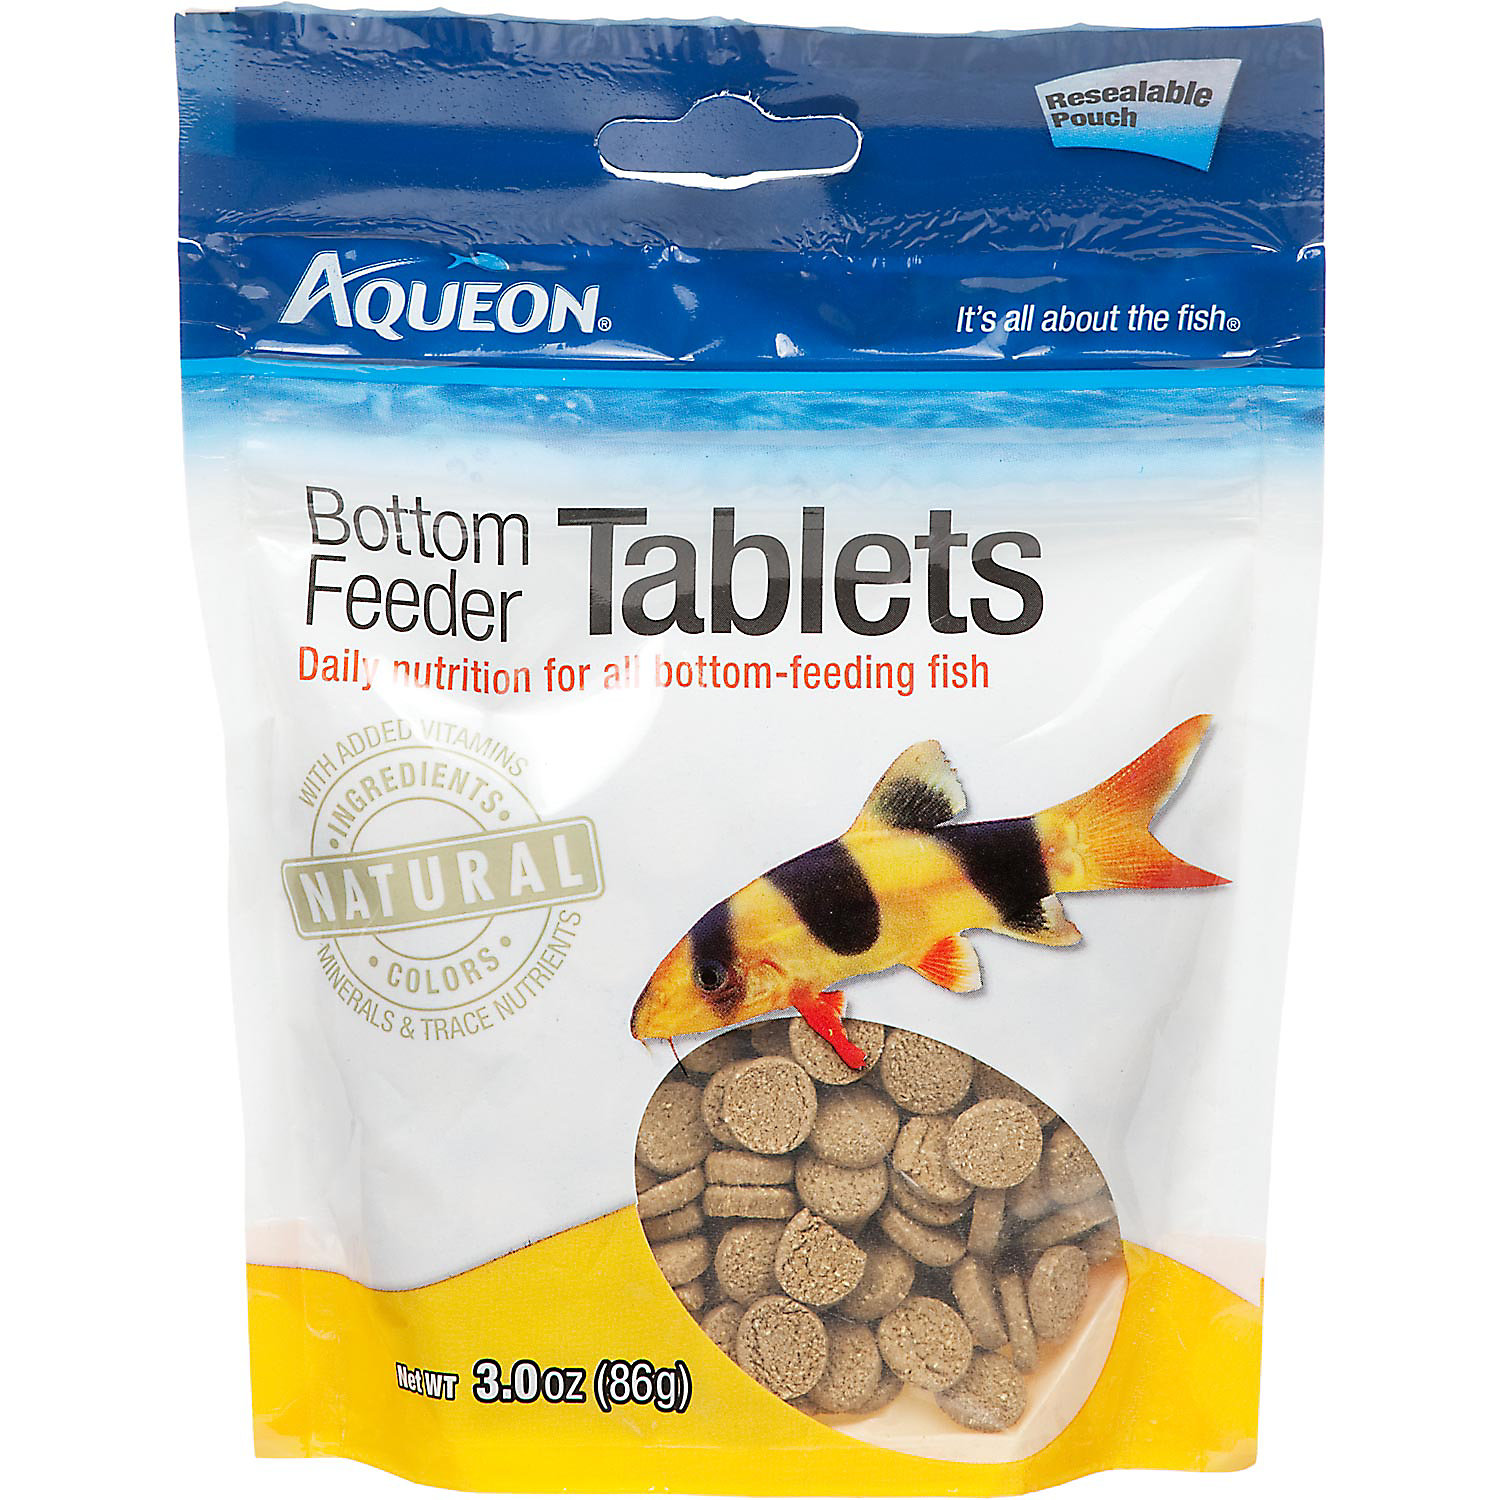 Aqueon Bottom Feeder Tablets 3 Oz.